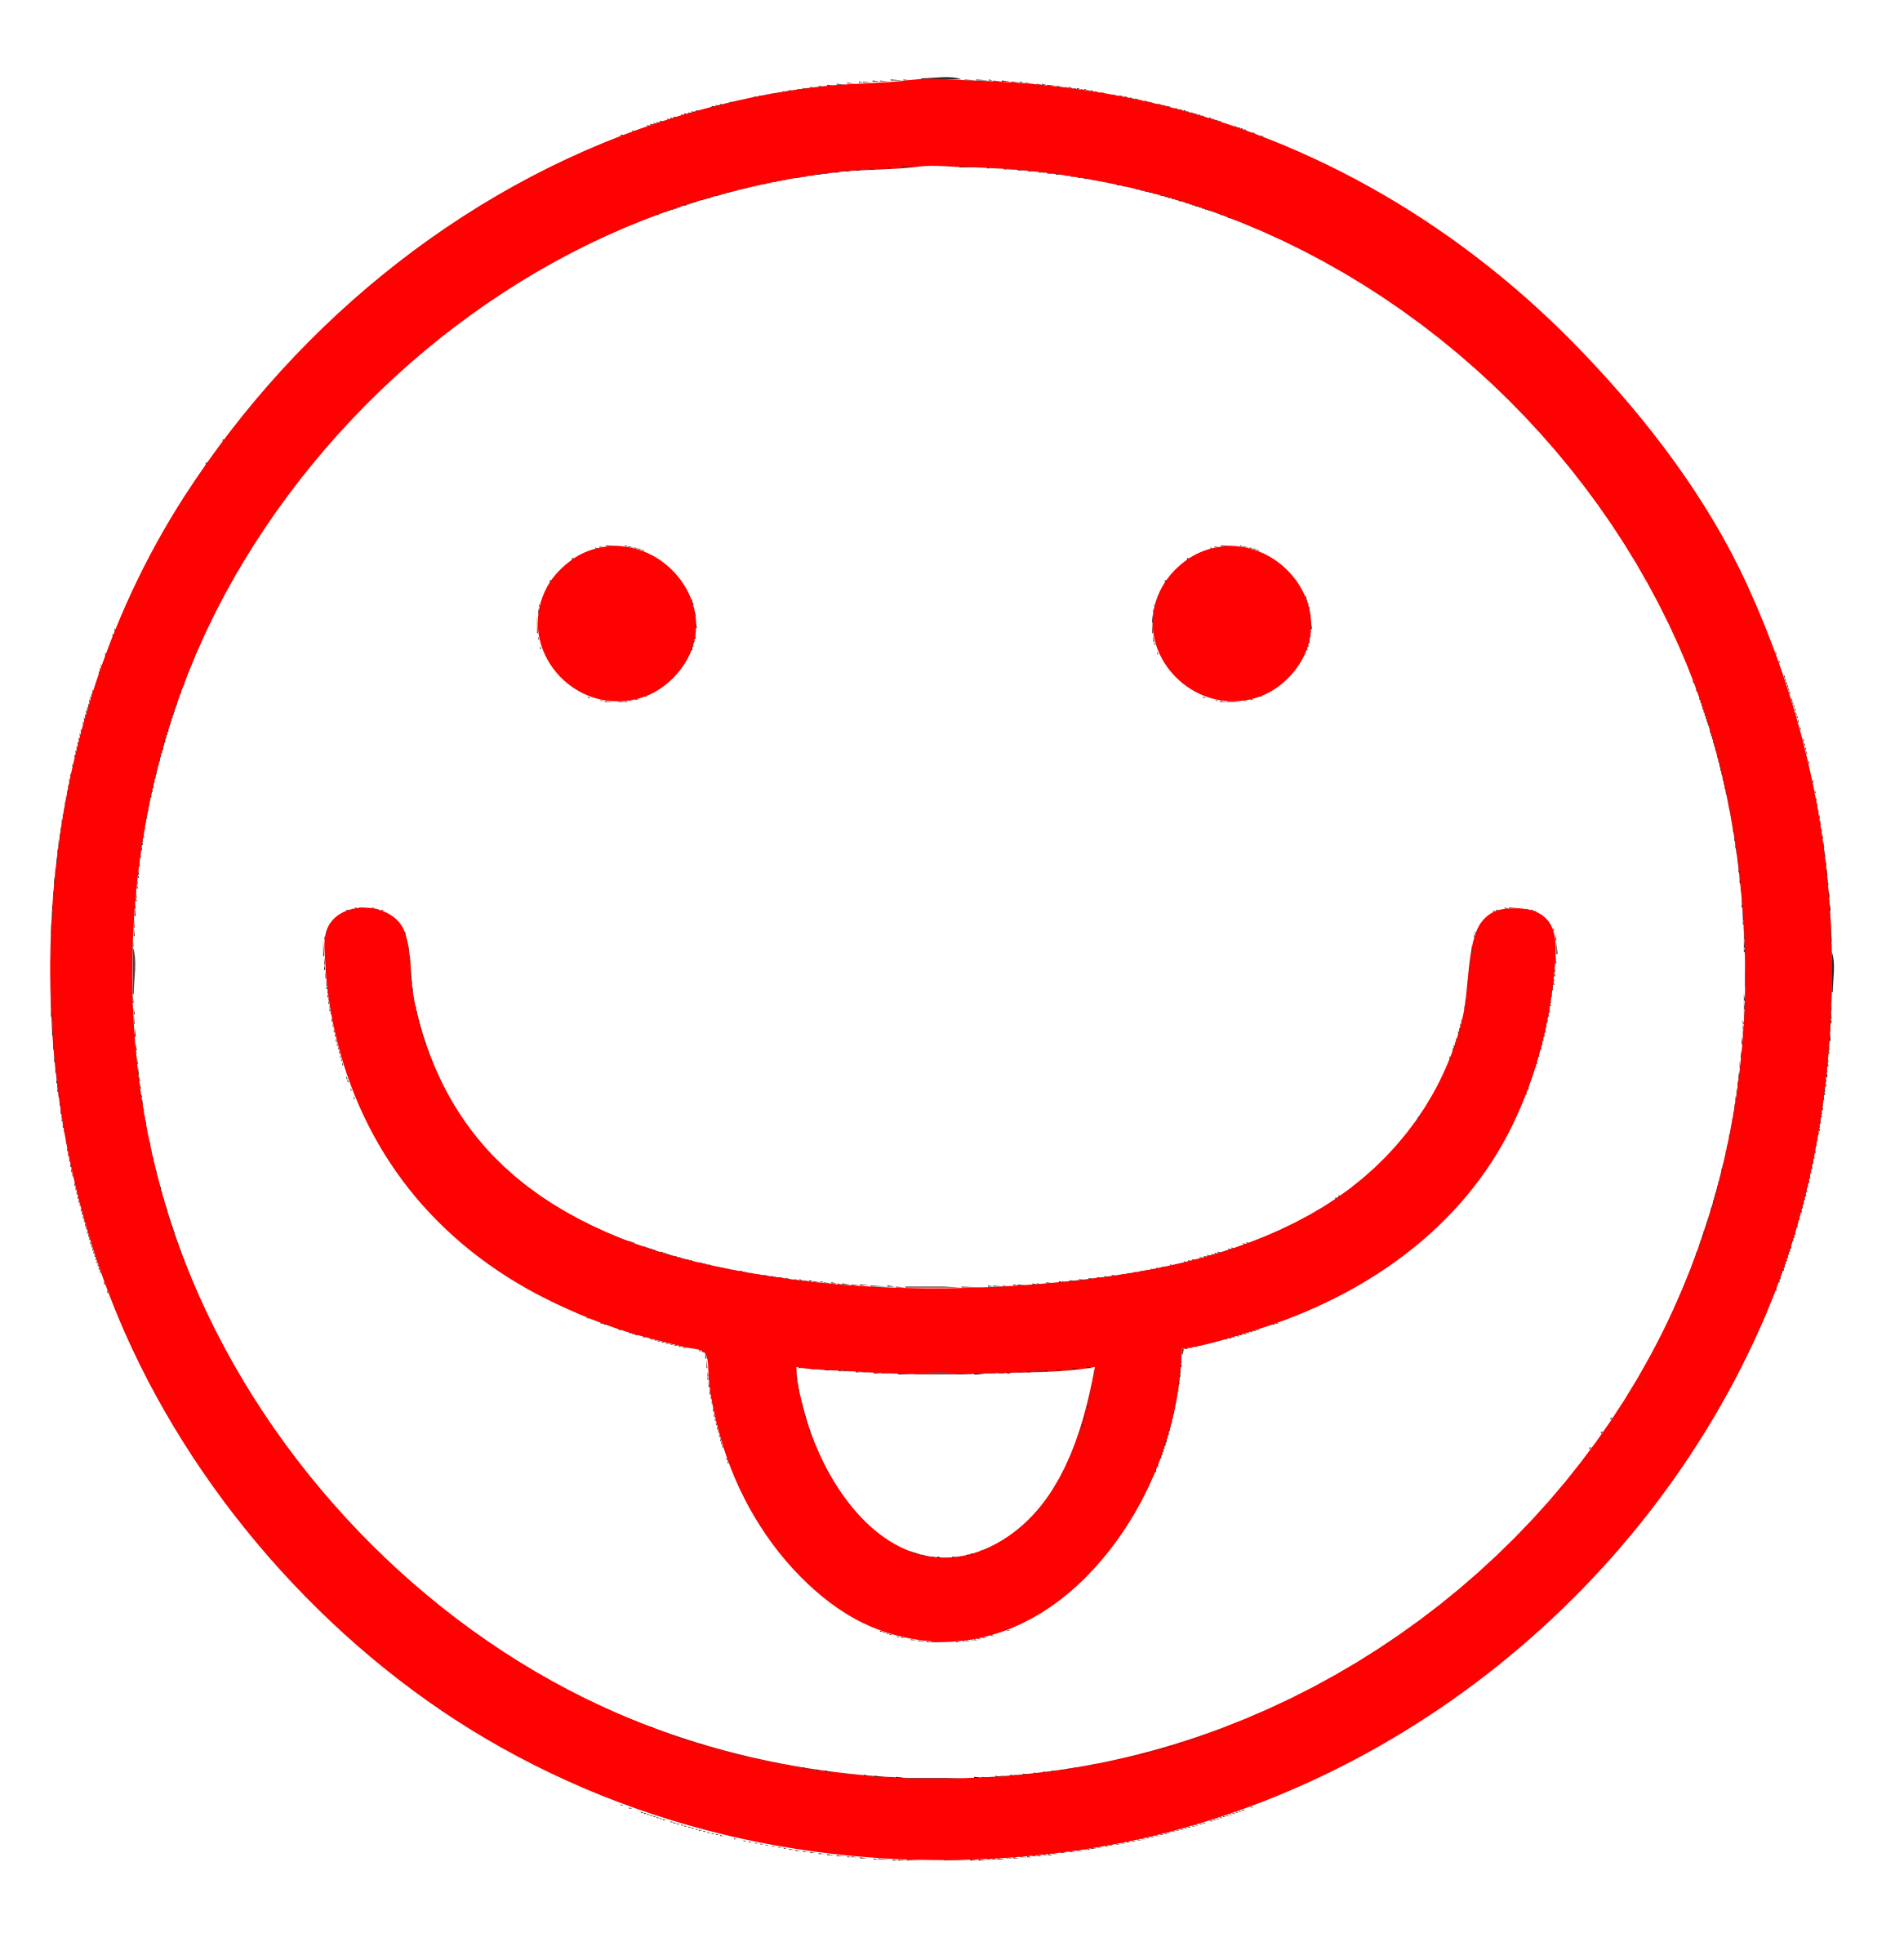 Smiley clipart red Red tongue Red sticking Smiley